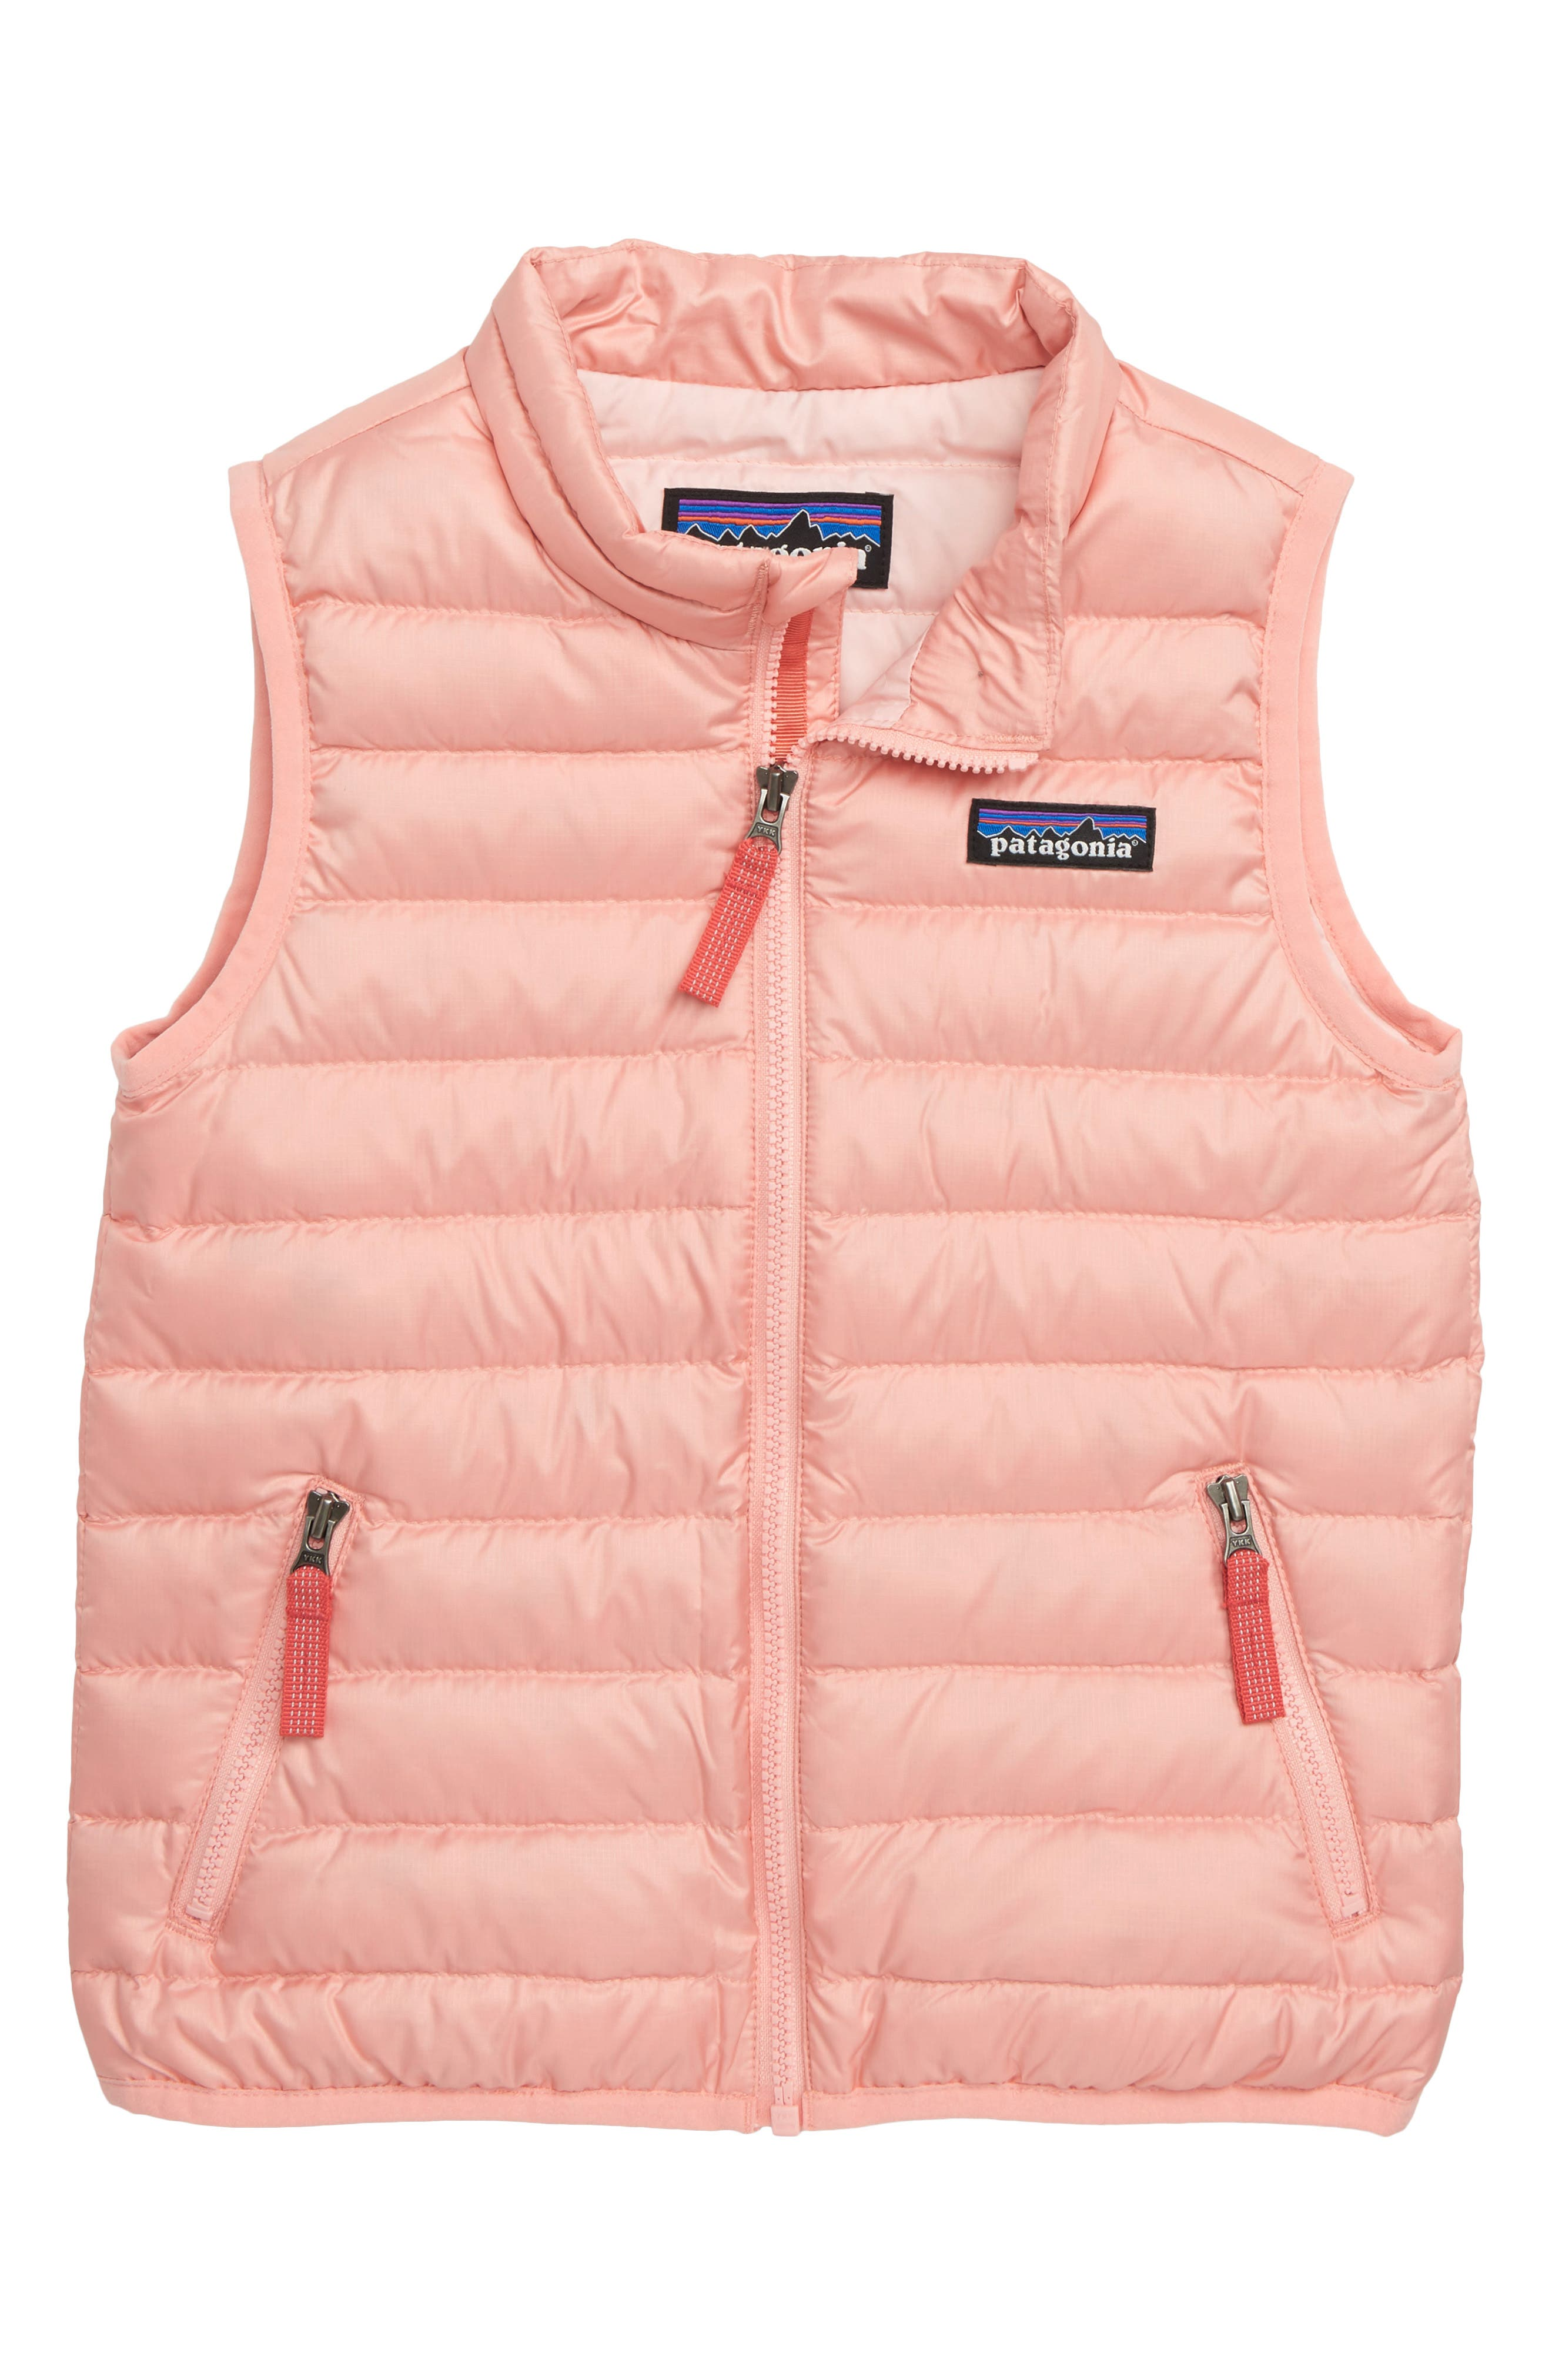 600-Fill Down Sweater Vest,                             Main thumbnail 1, color,                             MINERAL PINK